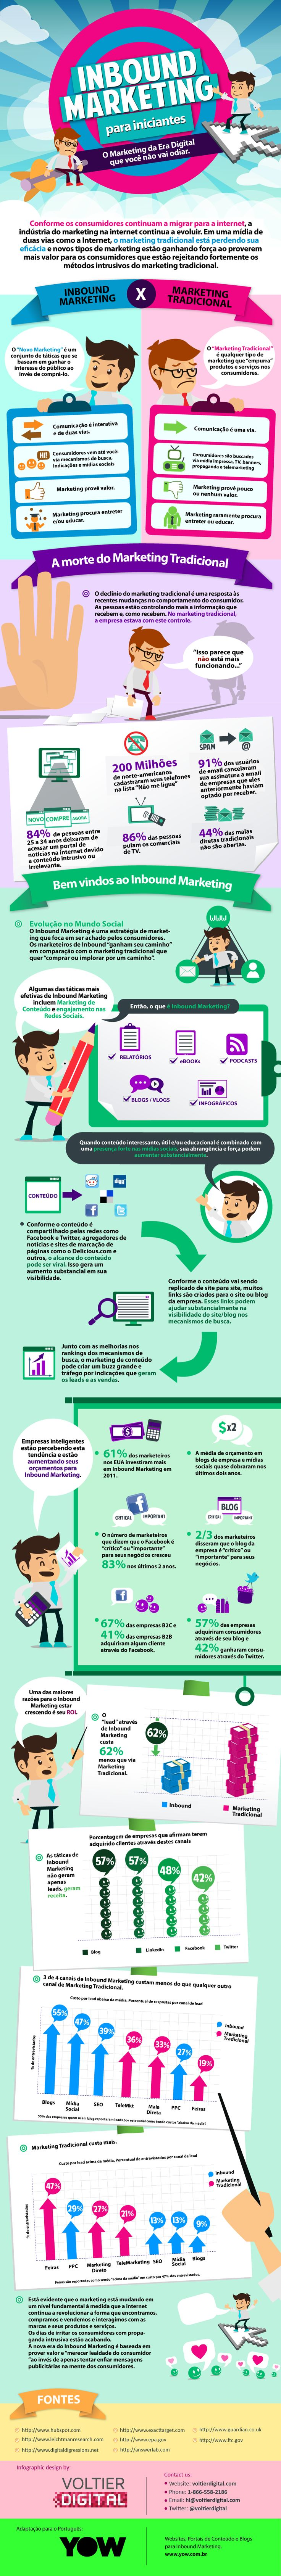 Infográfico - Inbound Marketing para Iniciantes